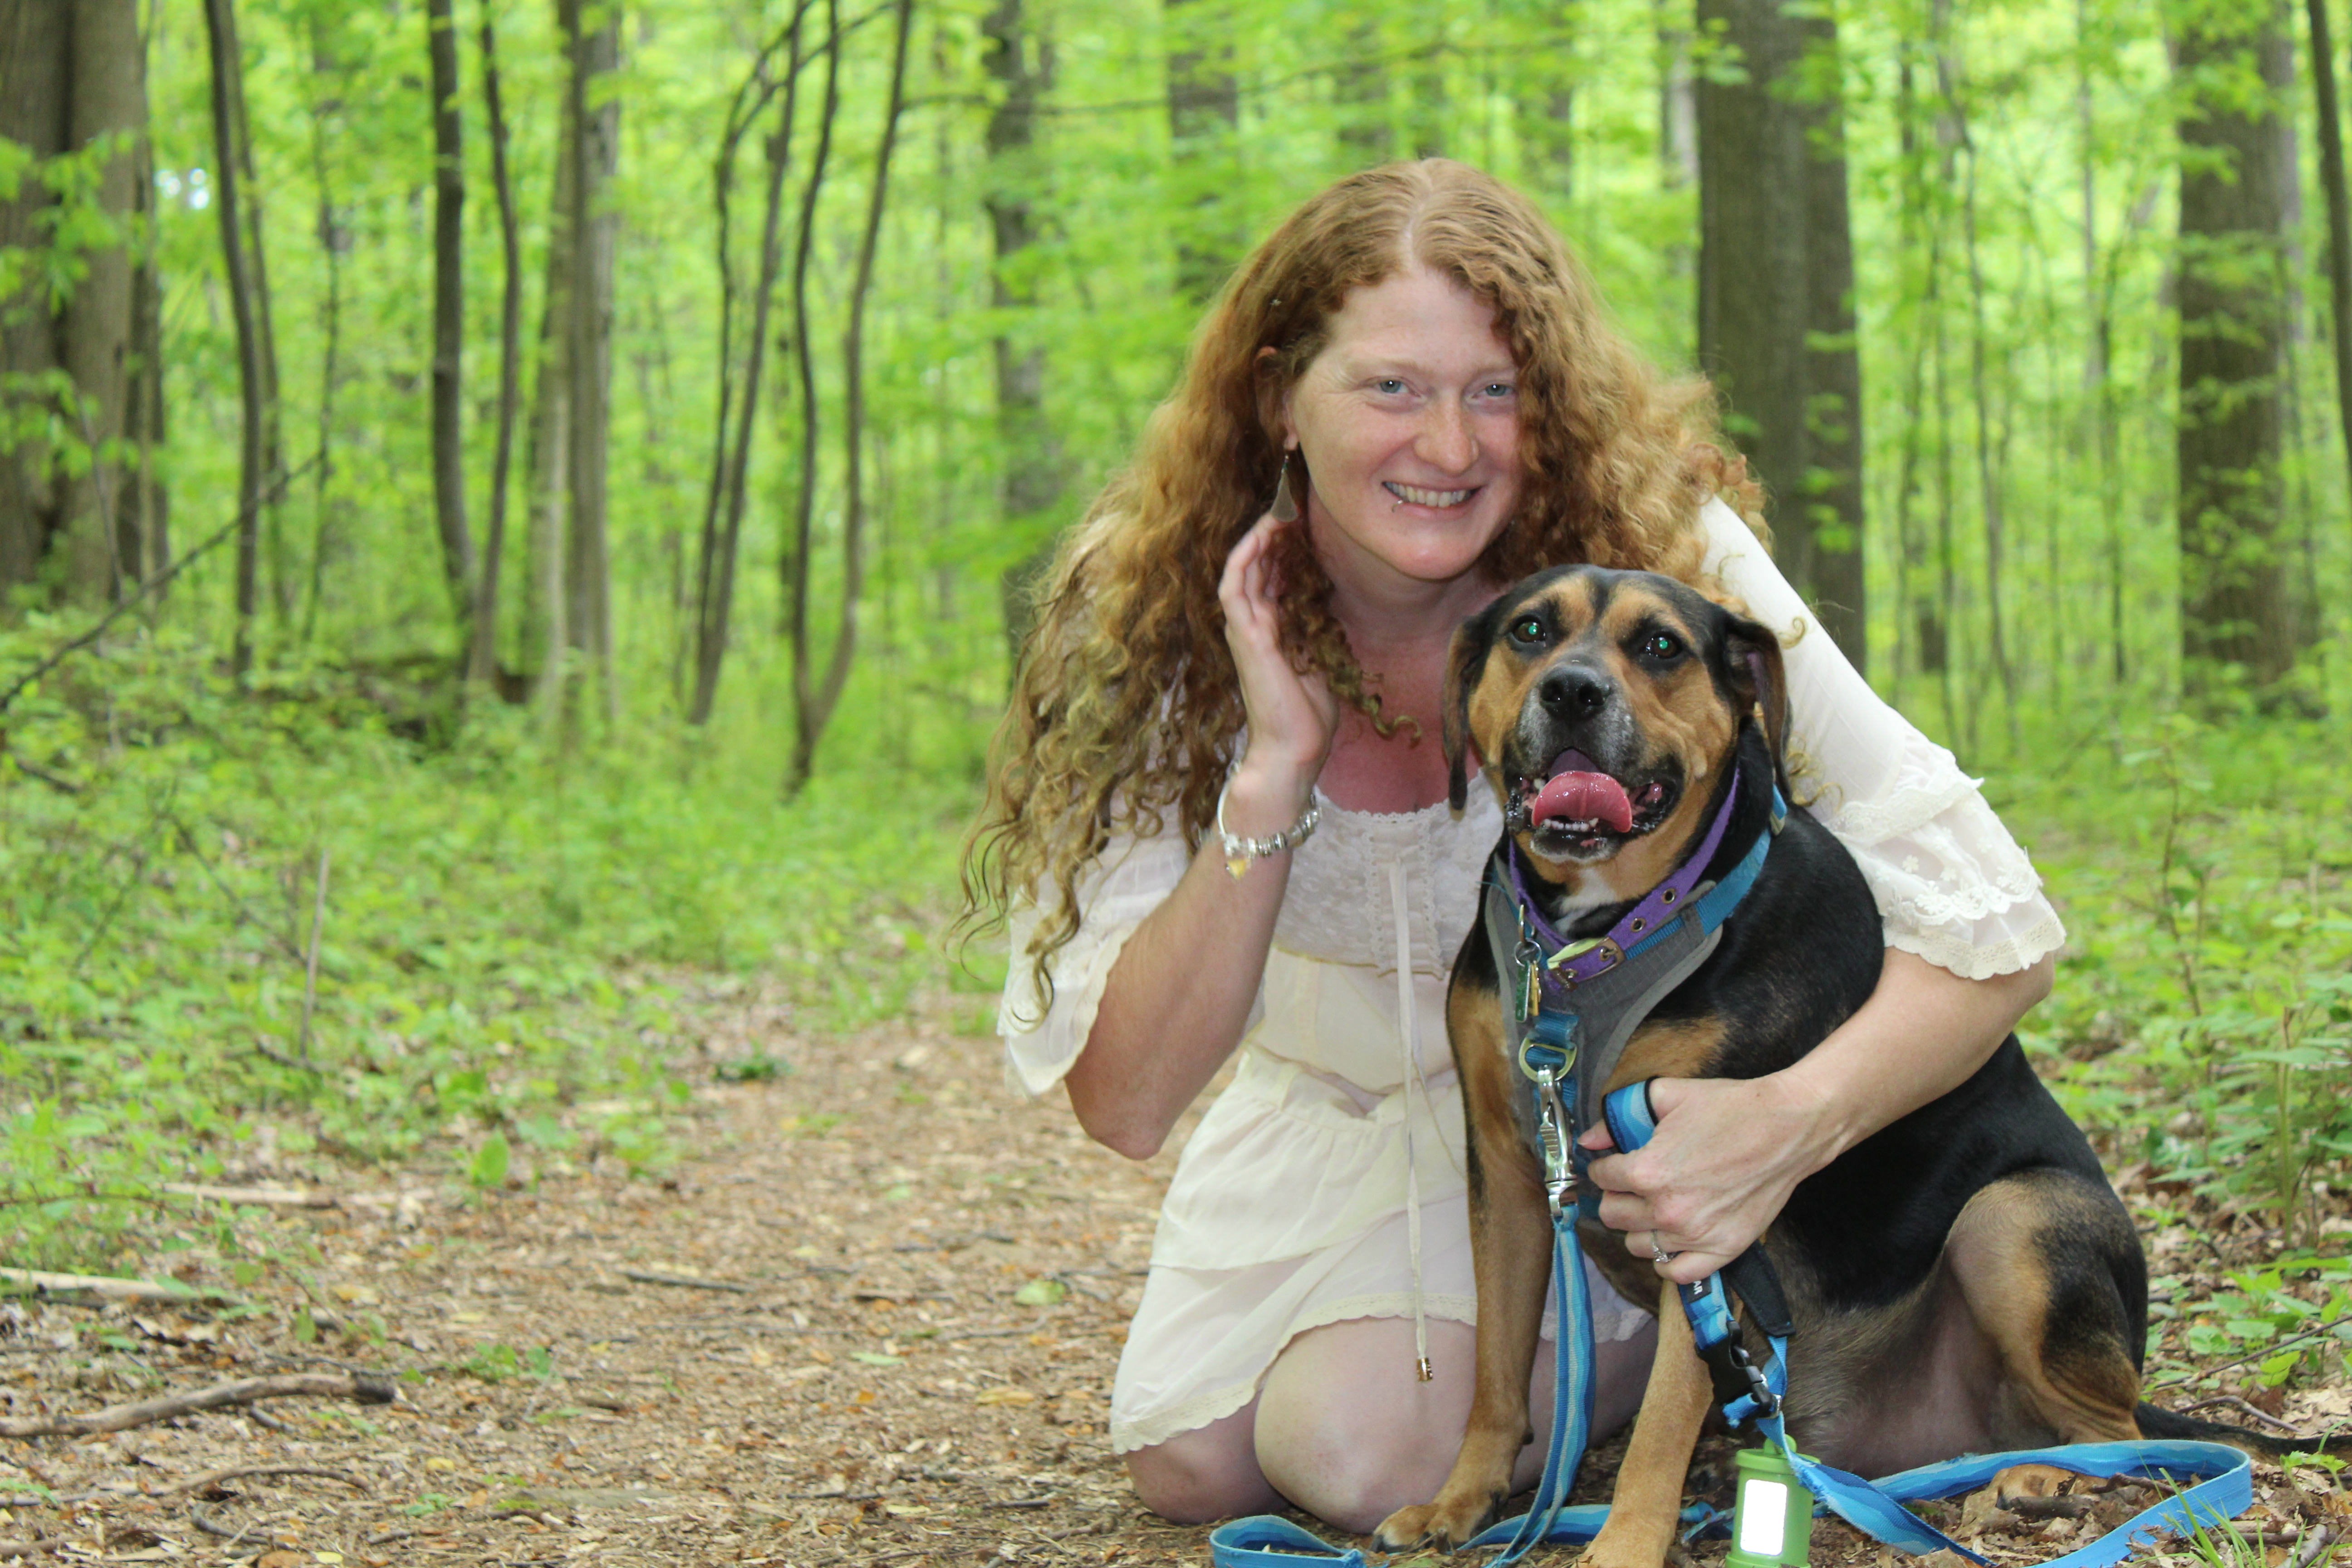 An image of Annalisa kneeling in the woods, hugging Benji, a black and tan hound dog.